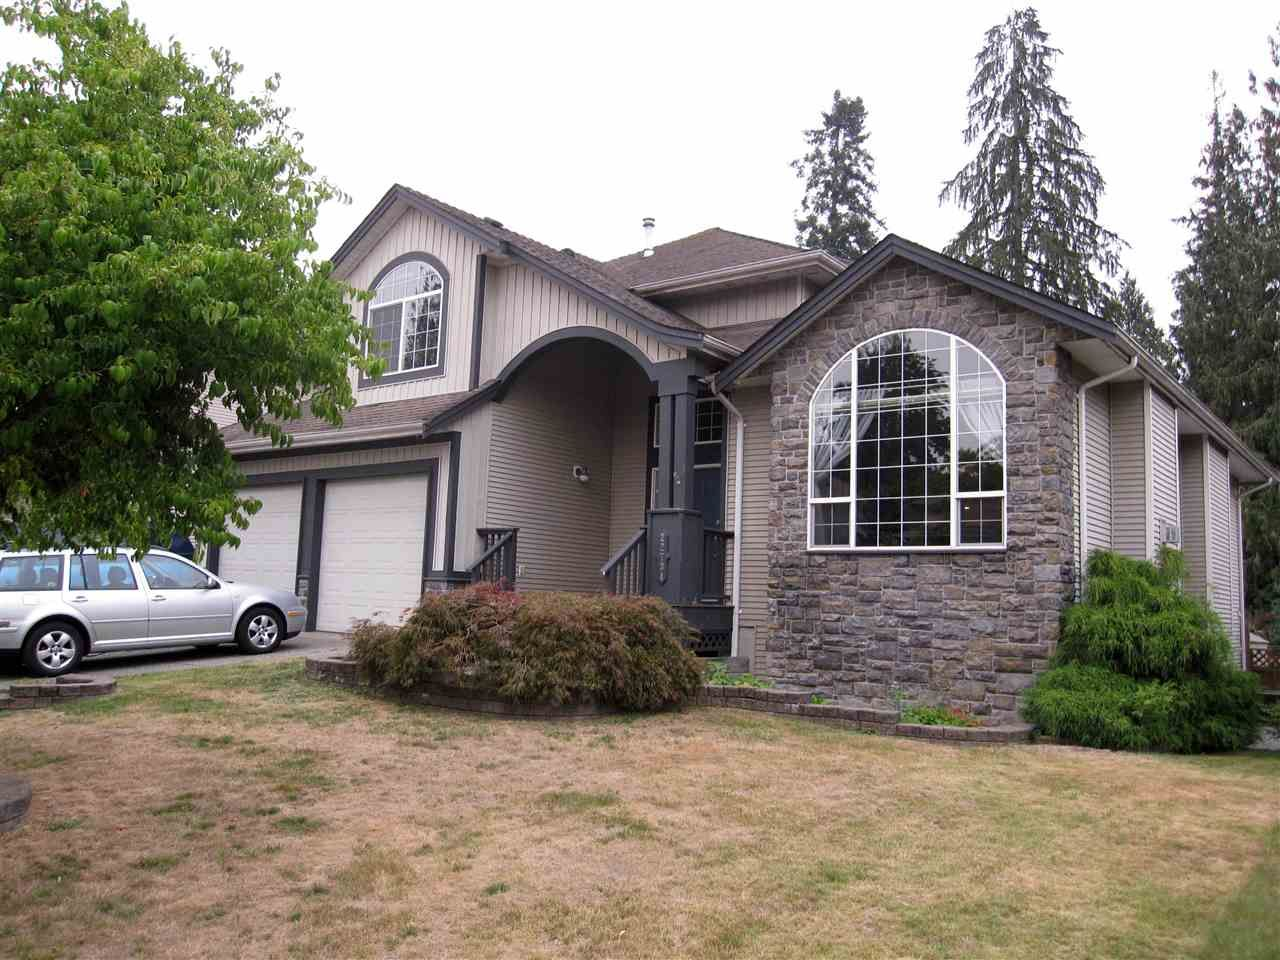 Main Photo: 22734 HOLYROOD Avenue in Maple Ridge: East Central House for sale : MLS®# R2203564